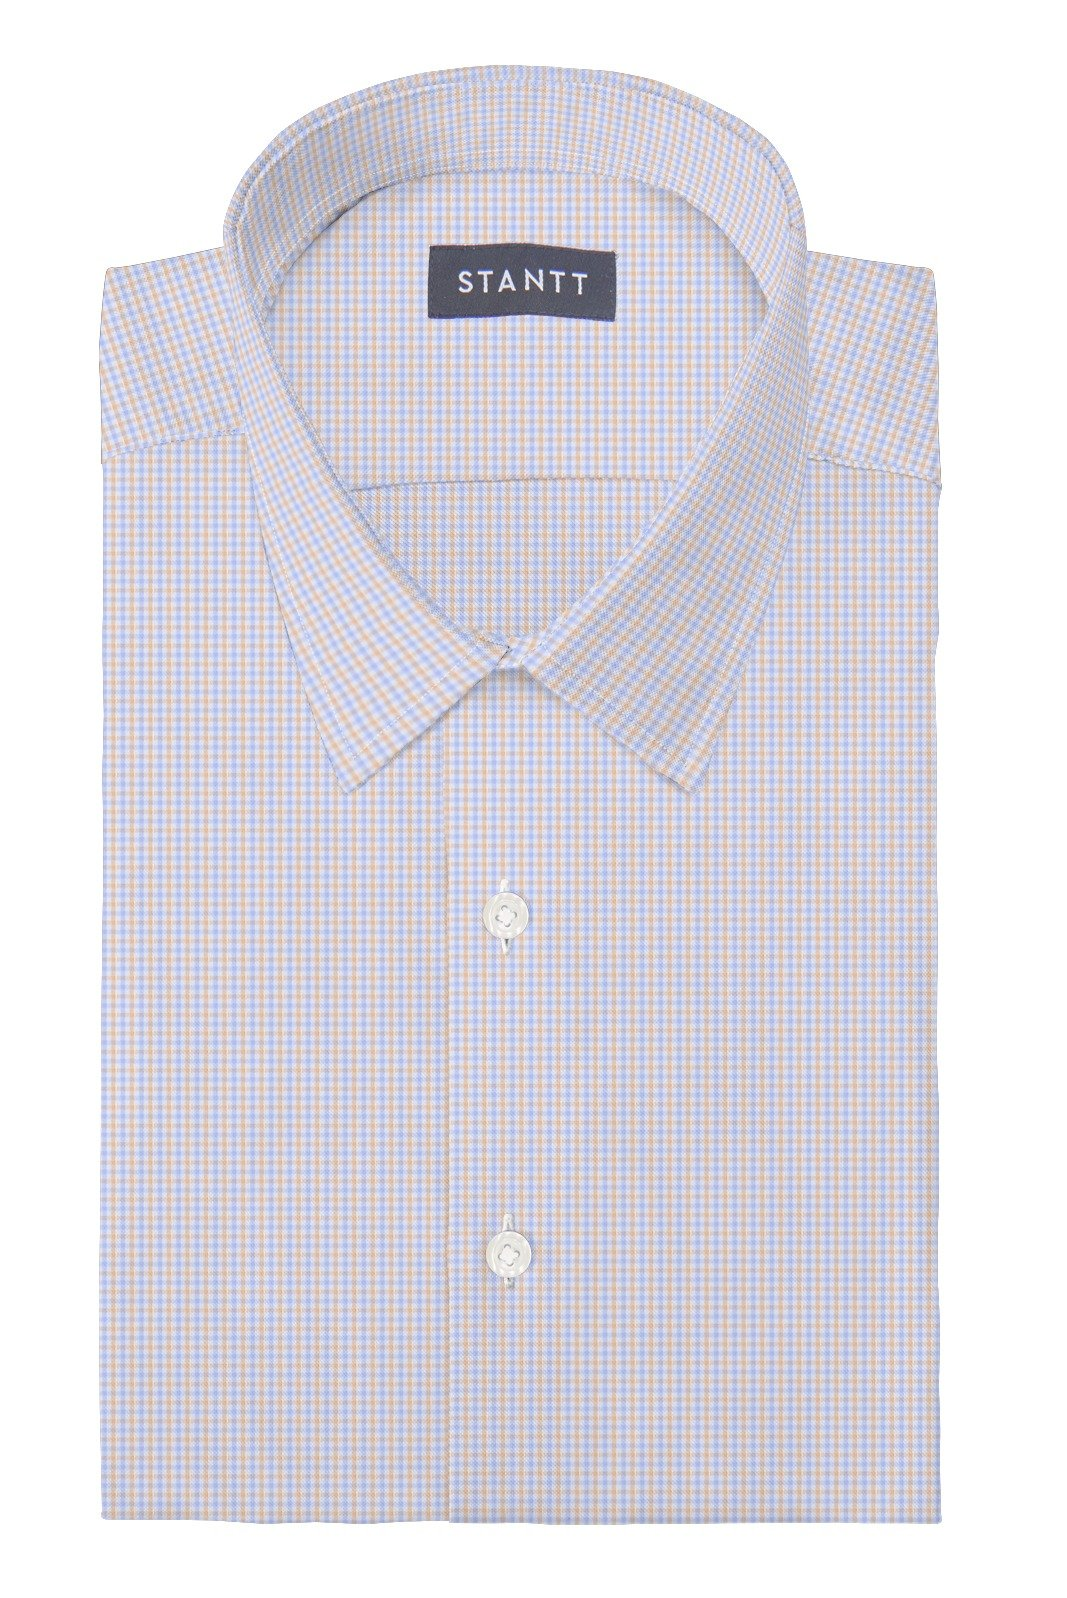 Matrix Sky Blue and Melon Tattersall: Semi-Spread Collar, Barrel Cuff